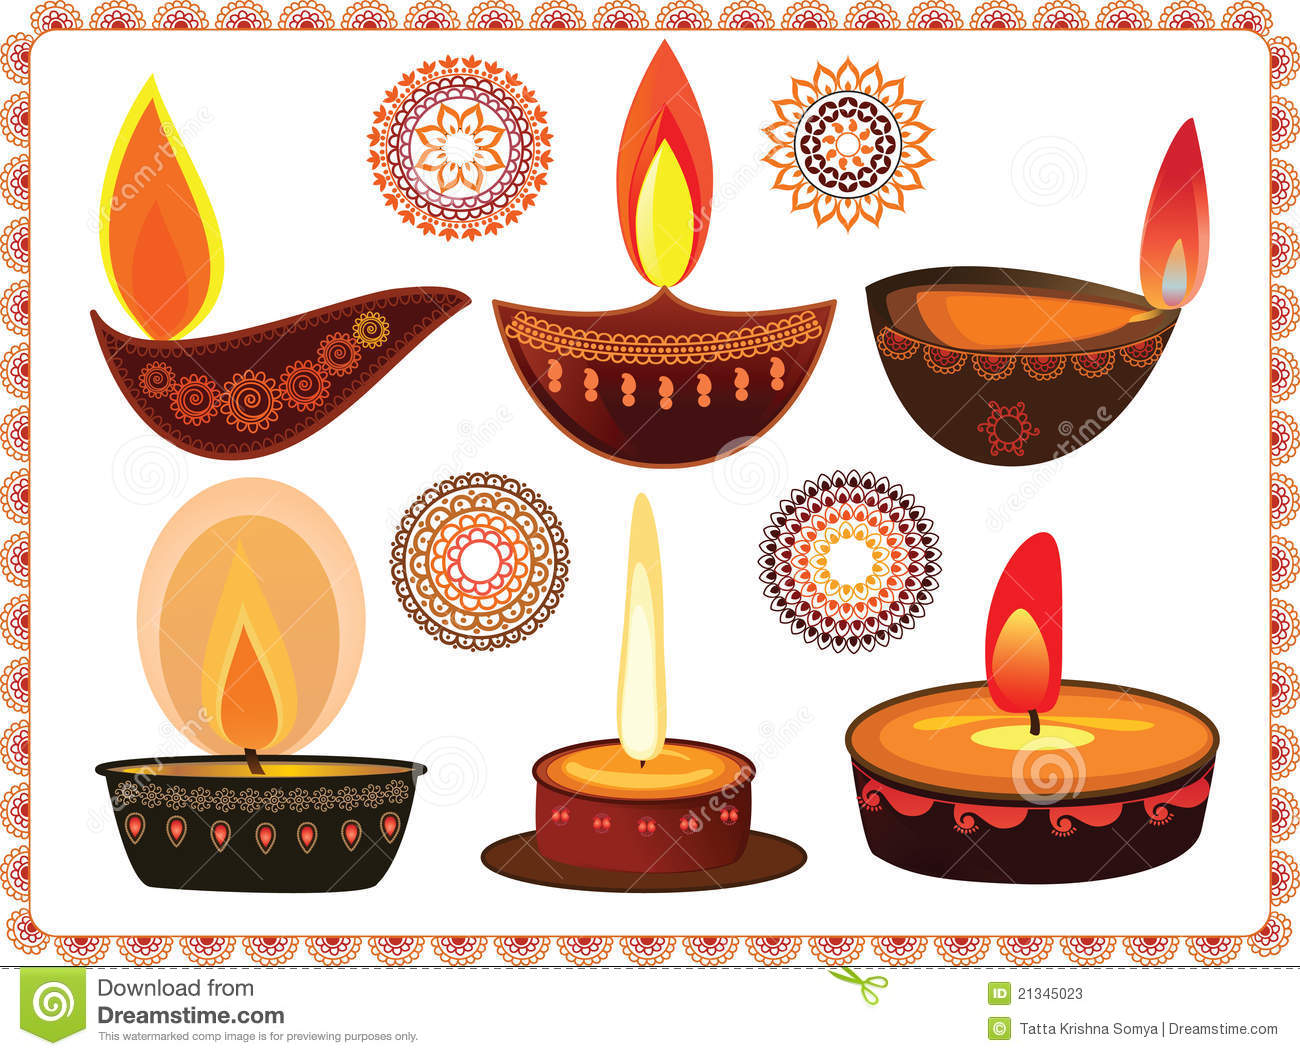 Diwali Lamp Designs Diwali Oil Lamps With Mandala Design Stock Photos Image